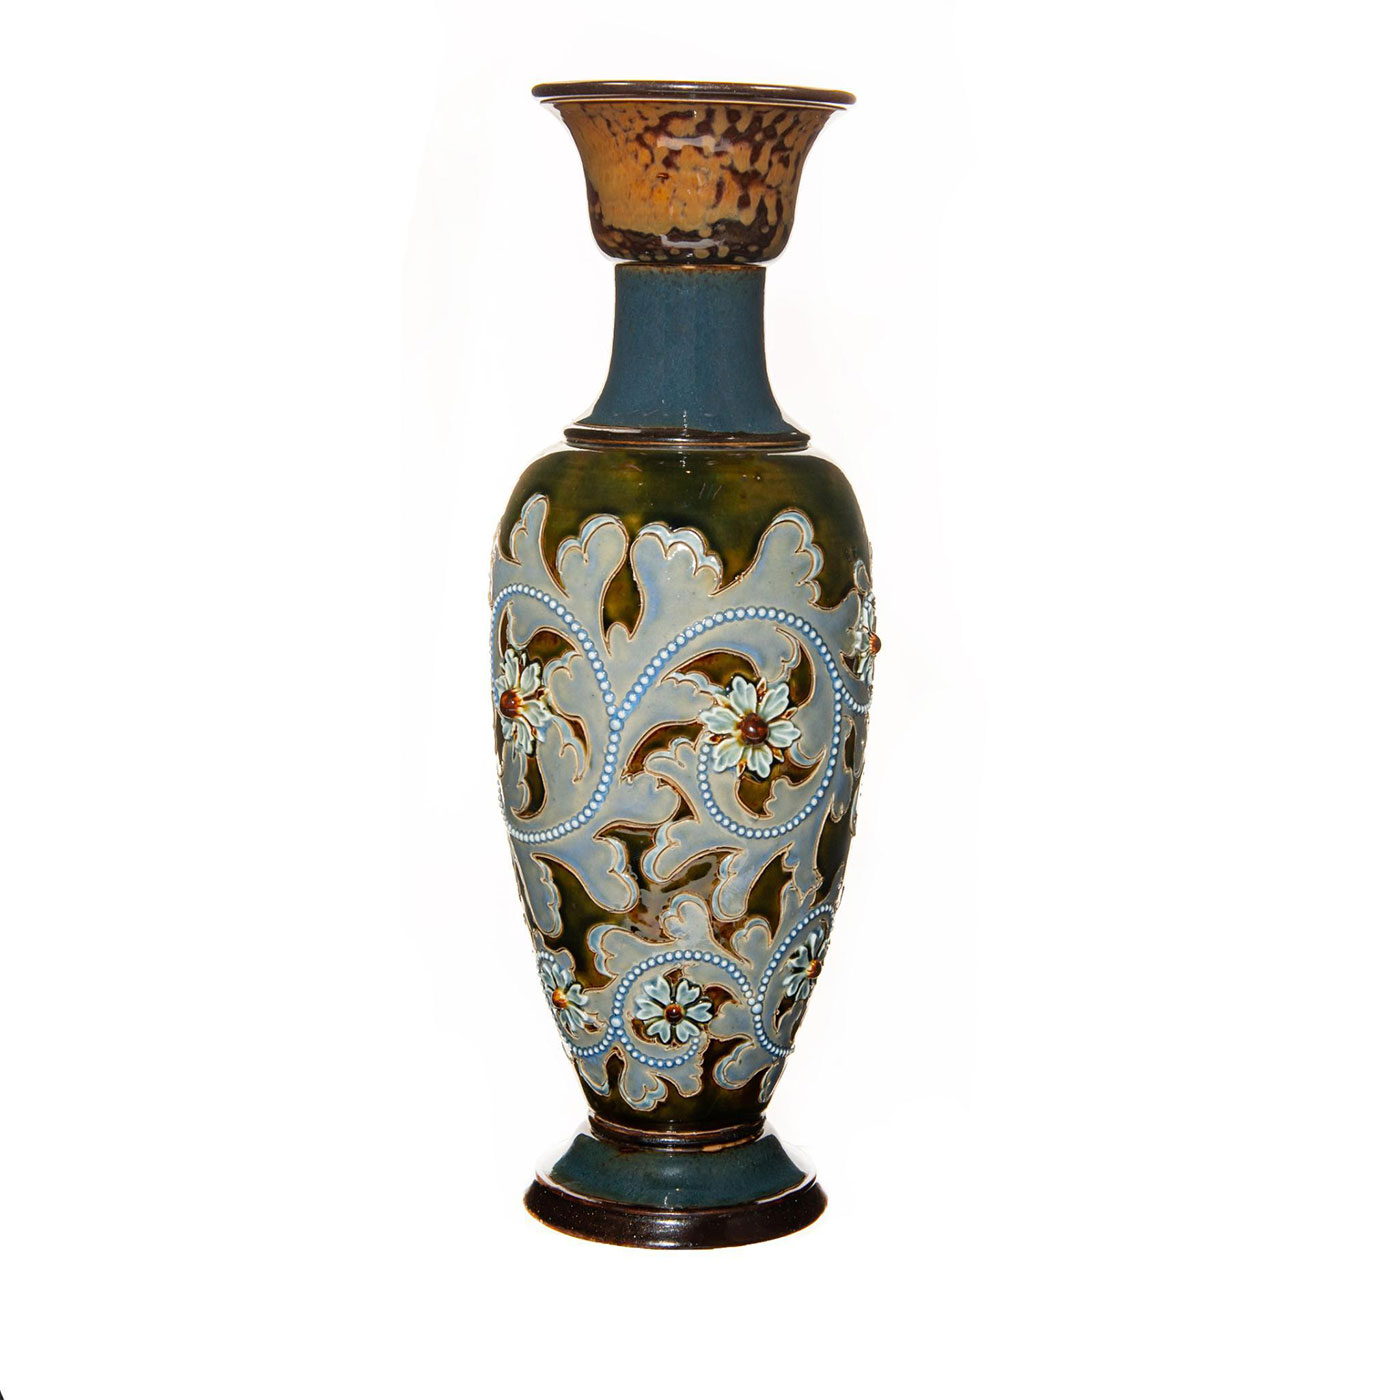 Pottery and Porcelain Buyers in Florida